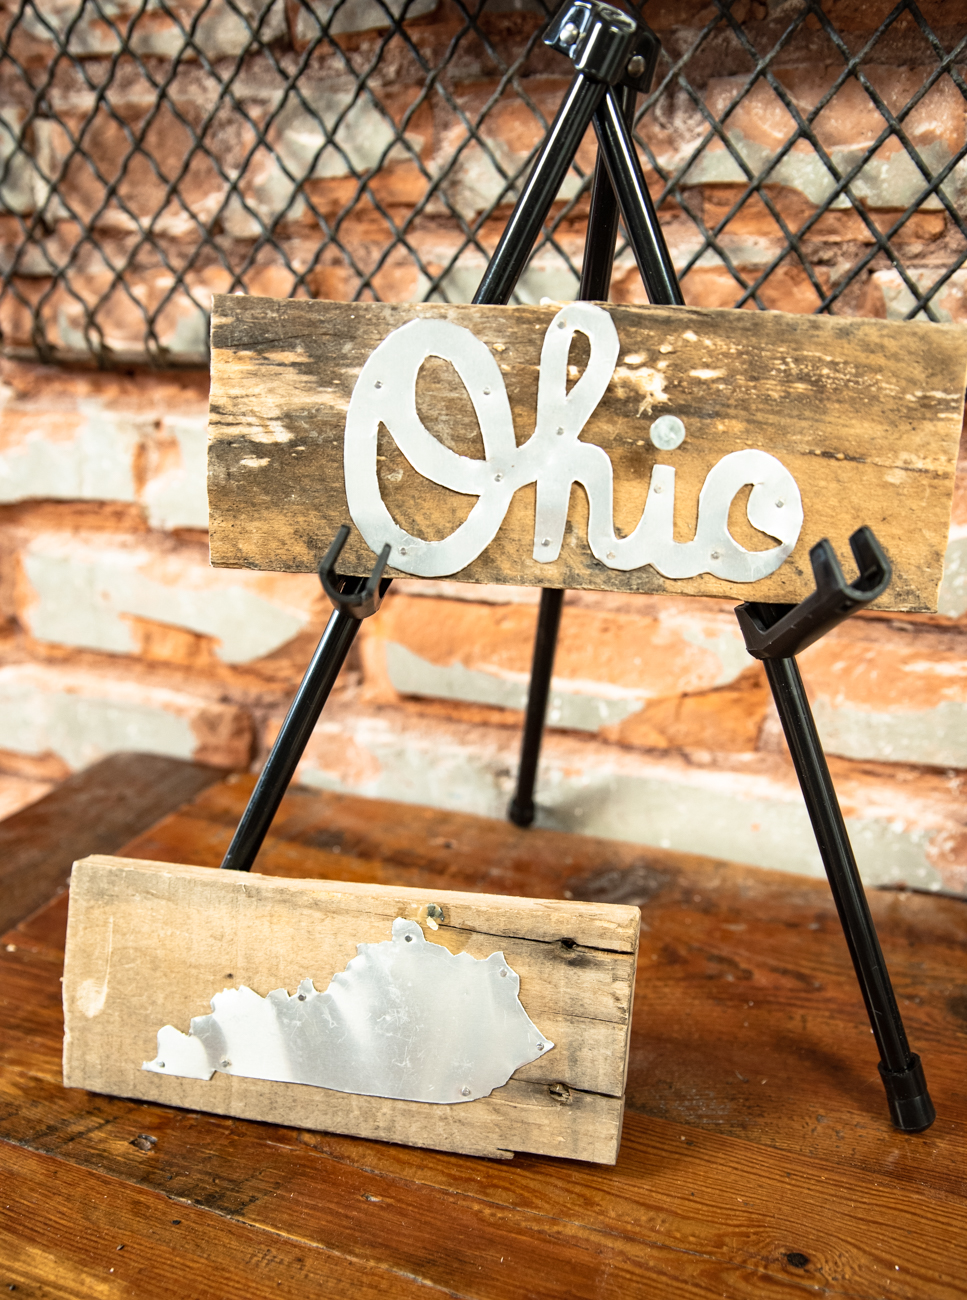 Sara Cole of Sara Cole Art Designs creates rustic wall hangings using reclaimed pallet and barn wood with detailed cut aluminum. Her work pays homage to the region and its charms, such as the Roebling bridge, Kentucky bourbon, and the great outdoors. / Image: Melissa Sliney // Published: 6.26.19